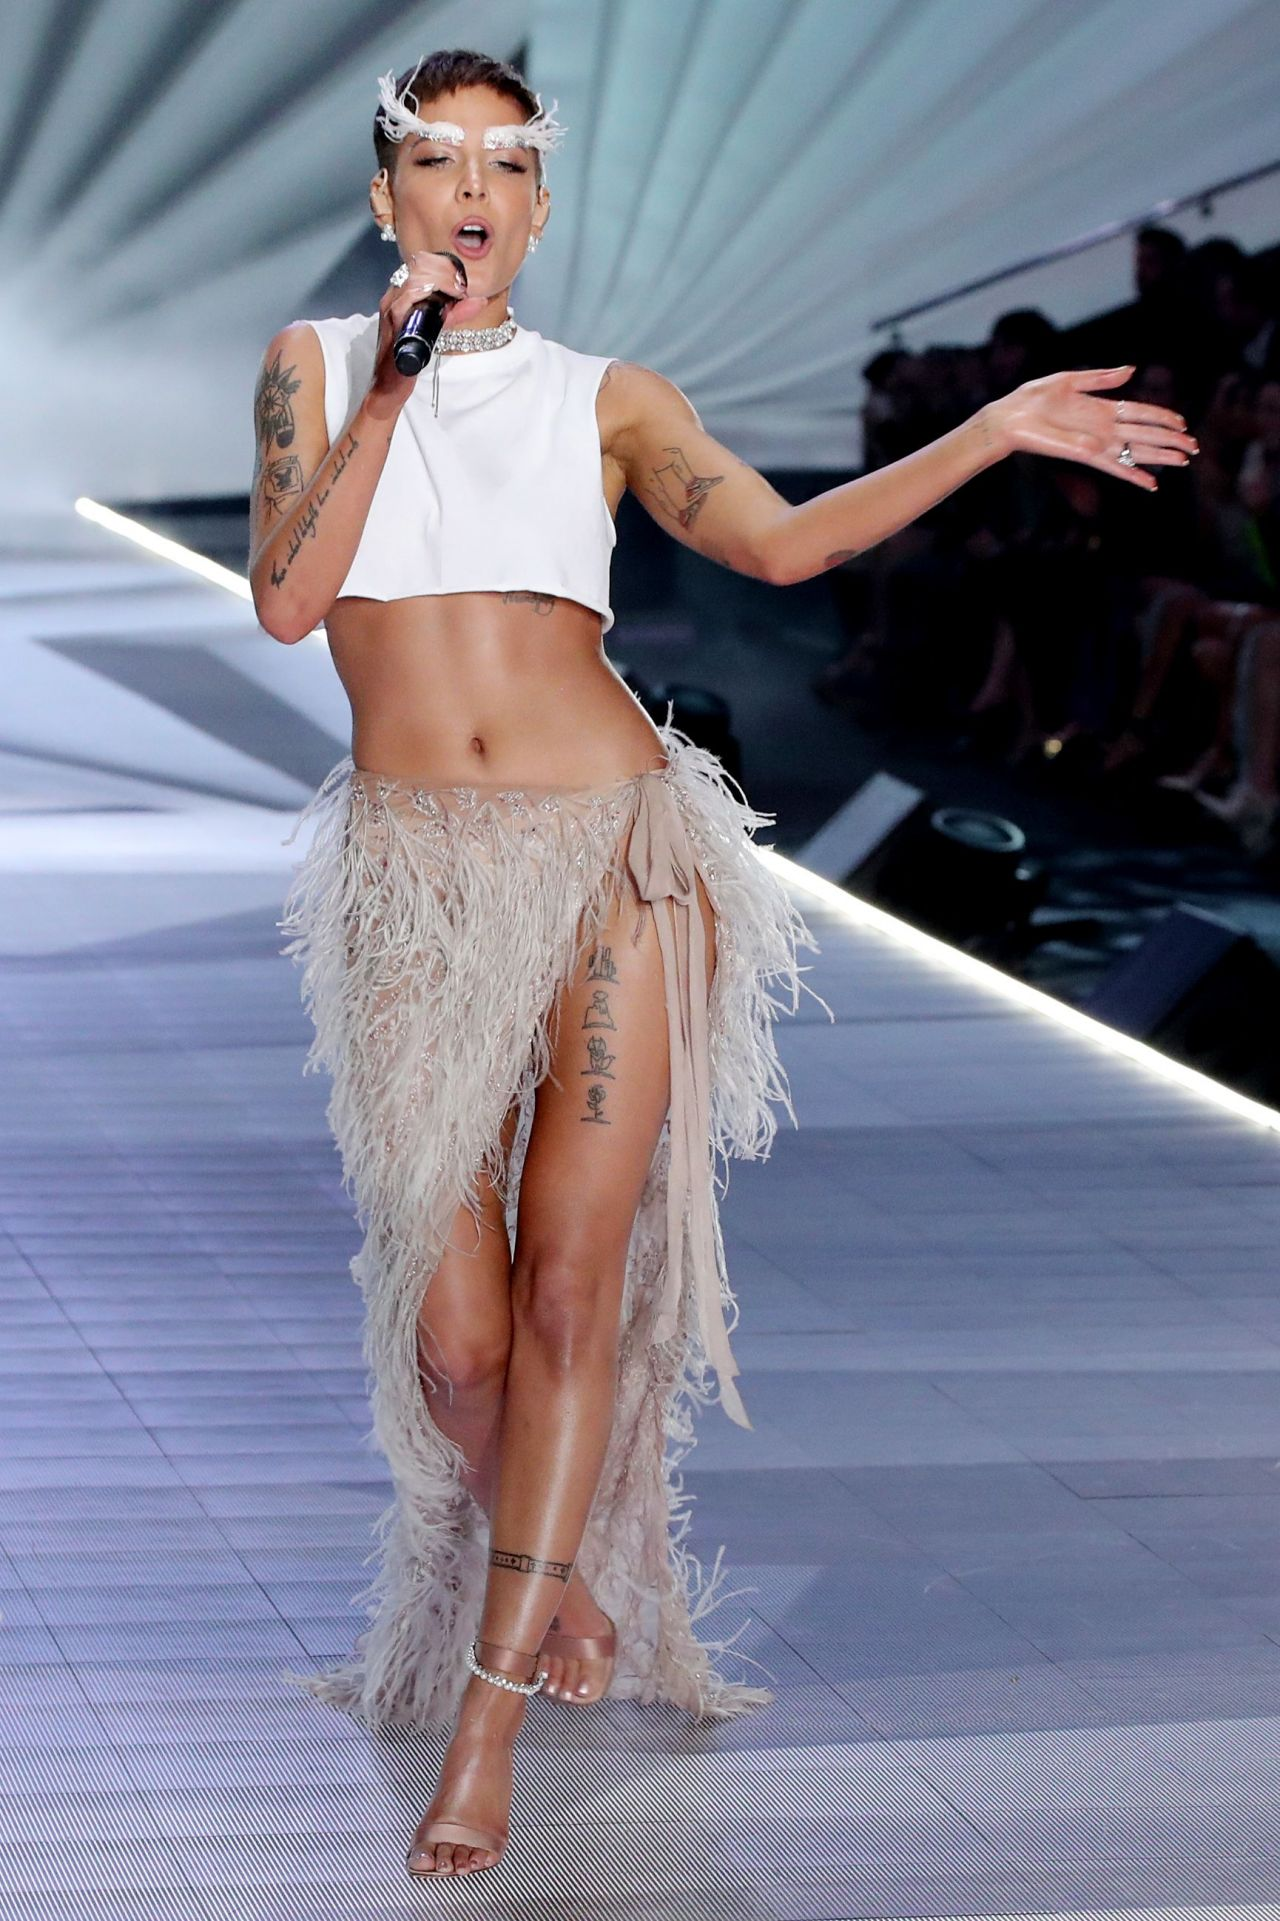 halsey performing at 2018 vs fashion show in nyc